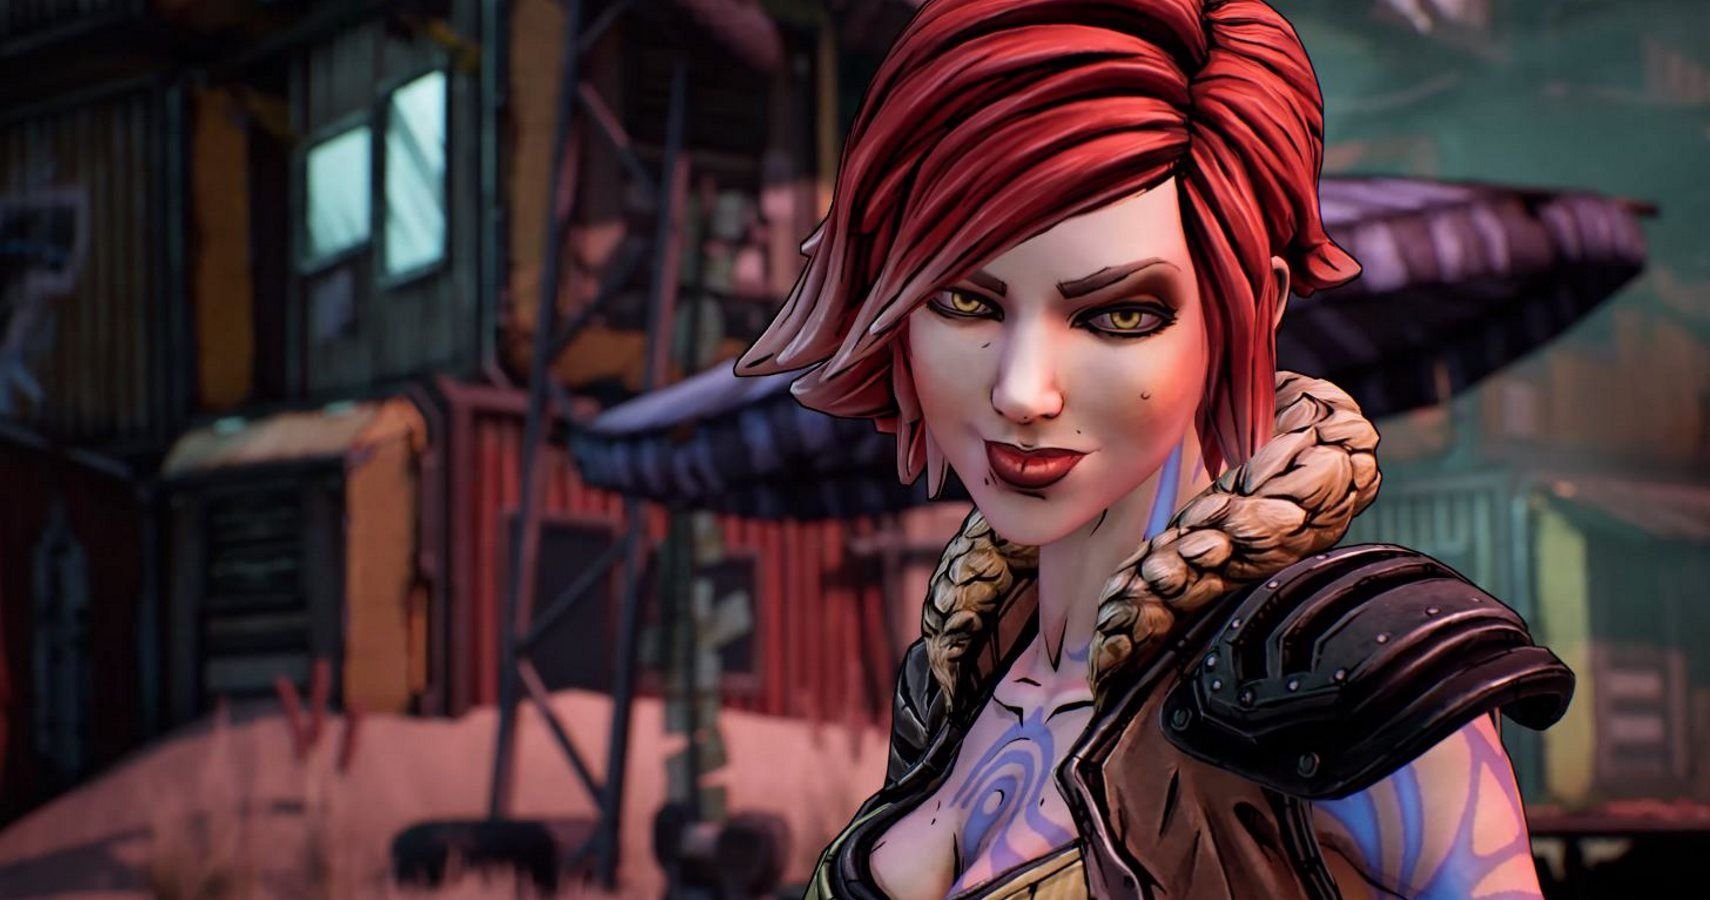 New Borderlands 2 DLC Rumored To Drop At This Year's E3 As Bridge